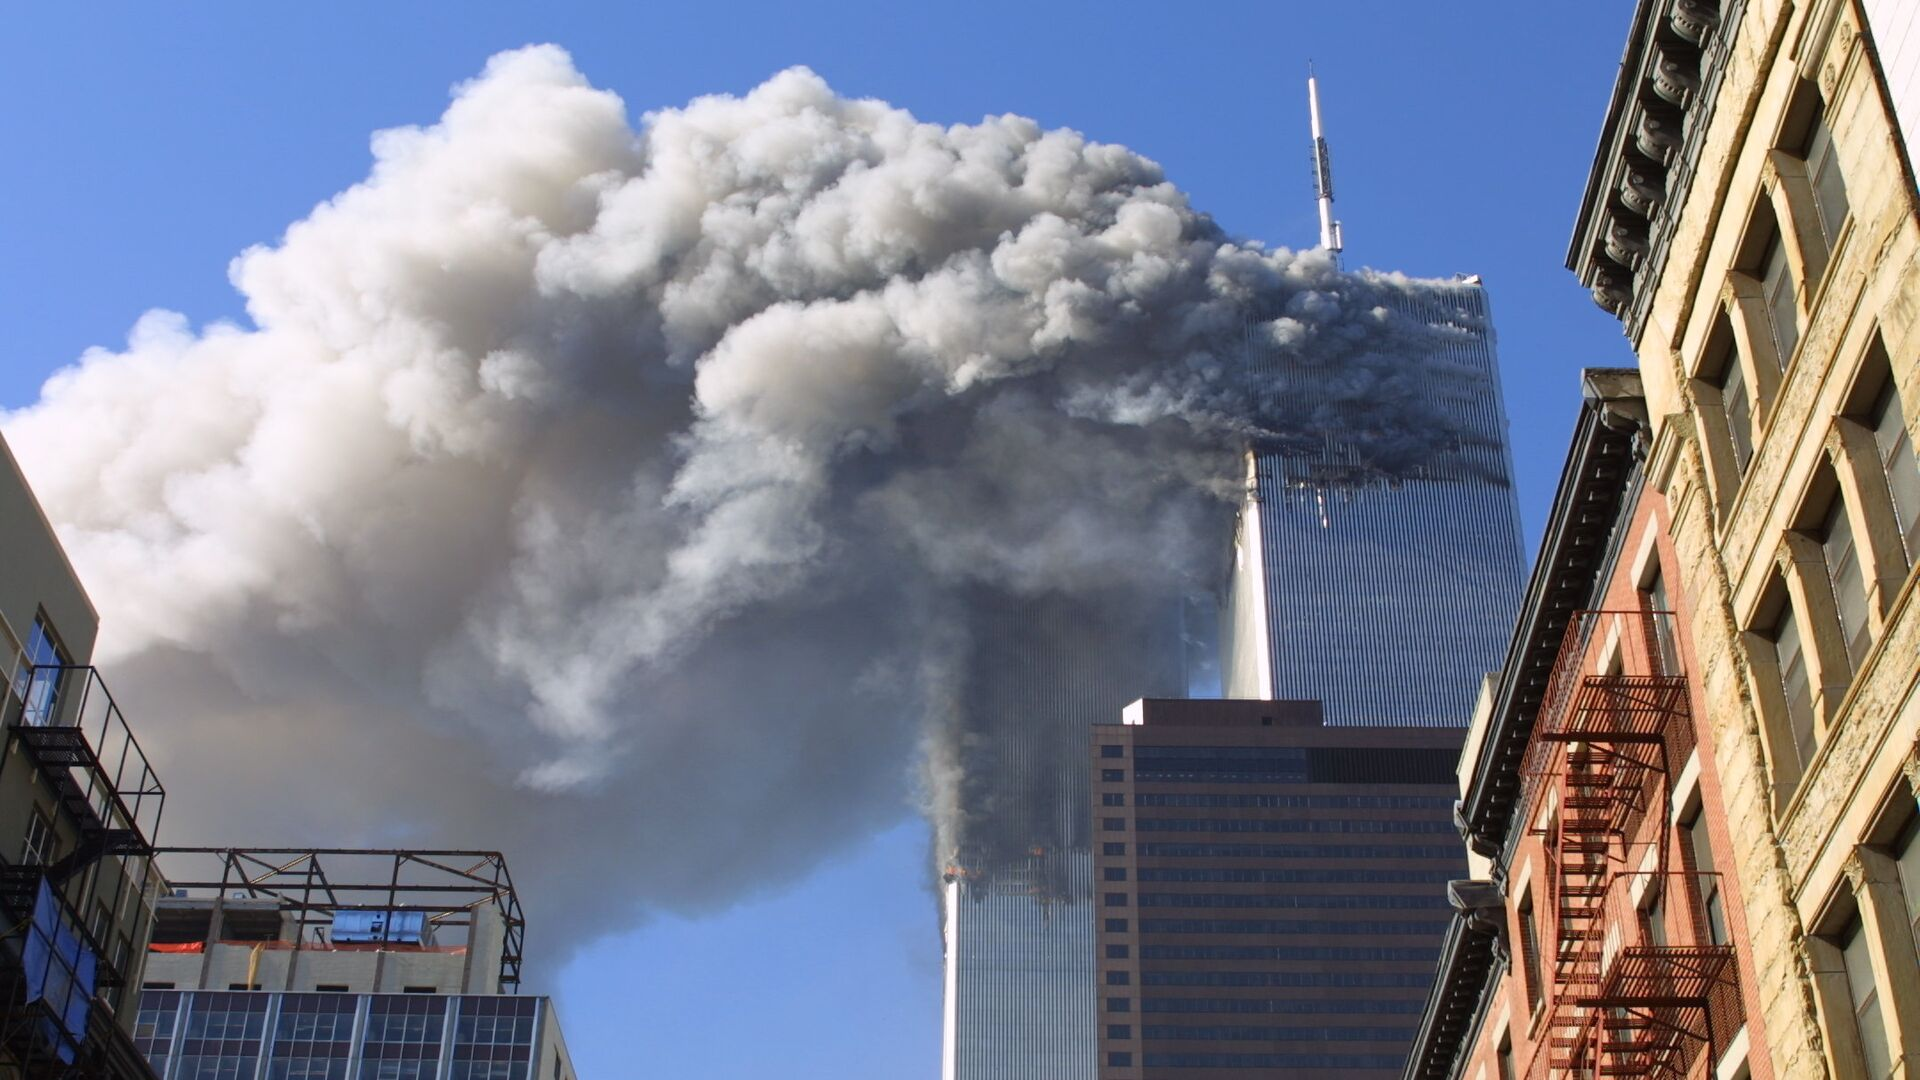 Twin towers of the World Trade Center burn after hijacked planes crashed into them in New York - Sputnik Mundo, 1920, 10.09.2021